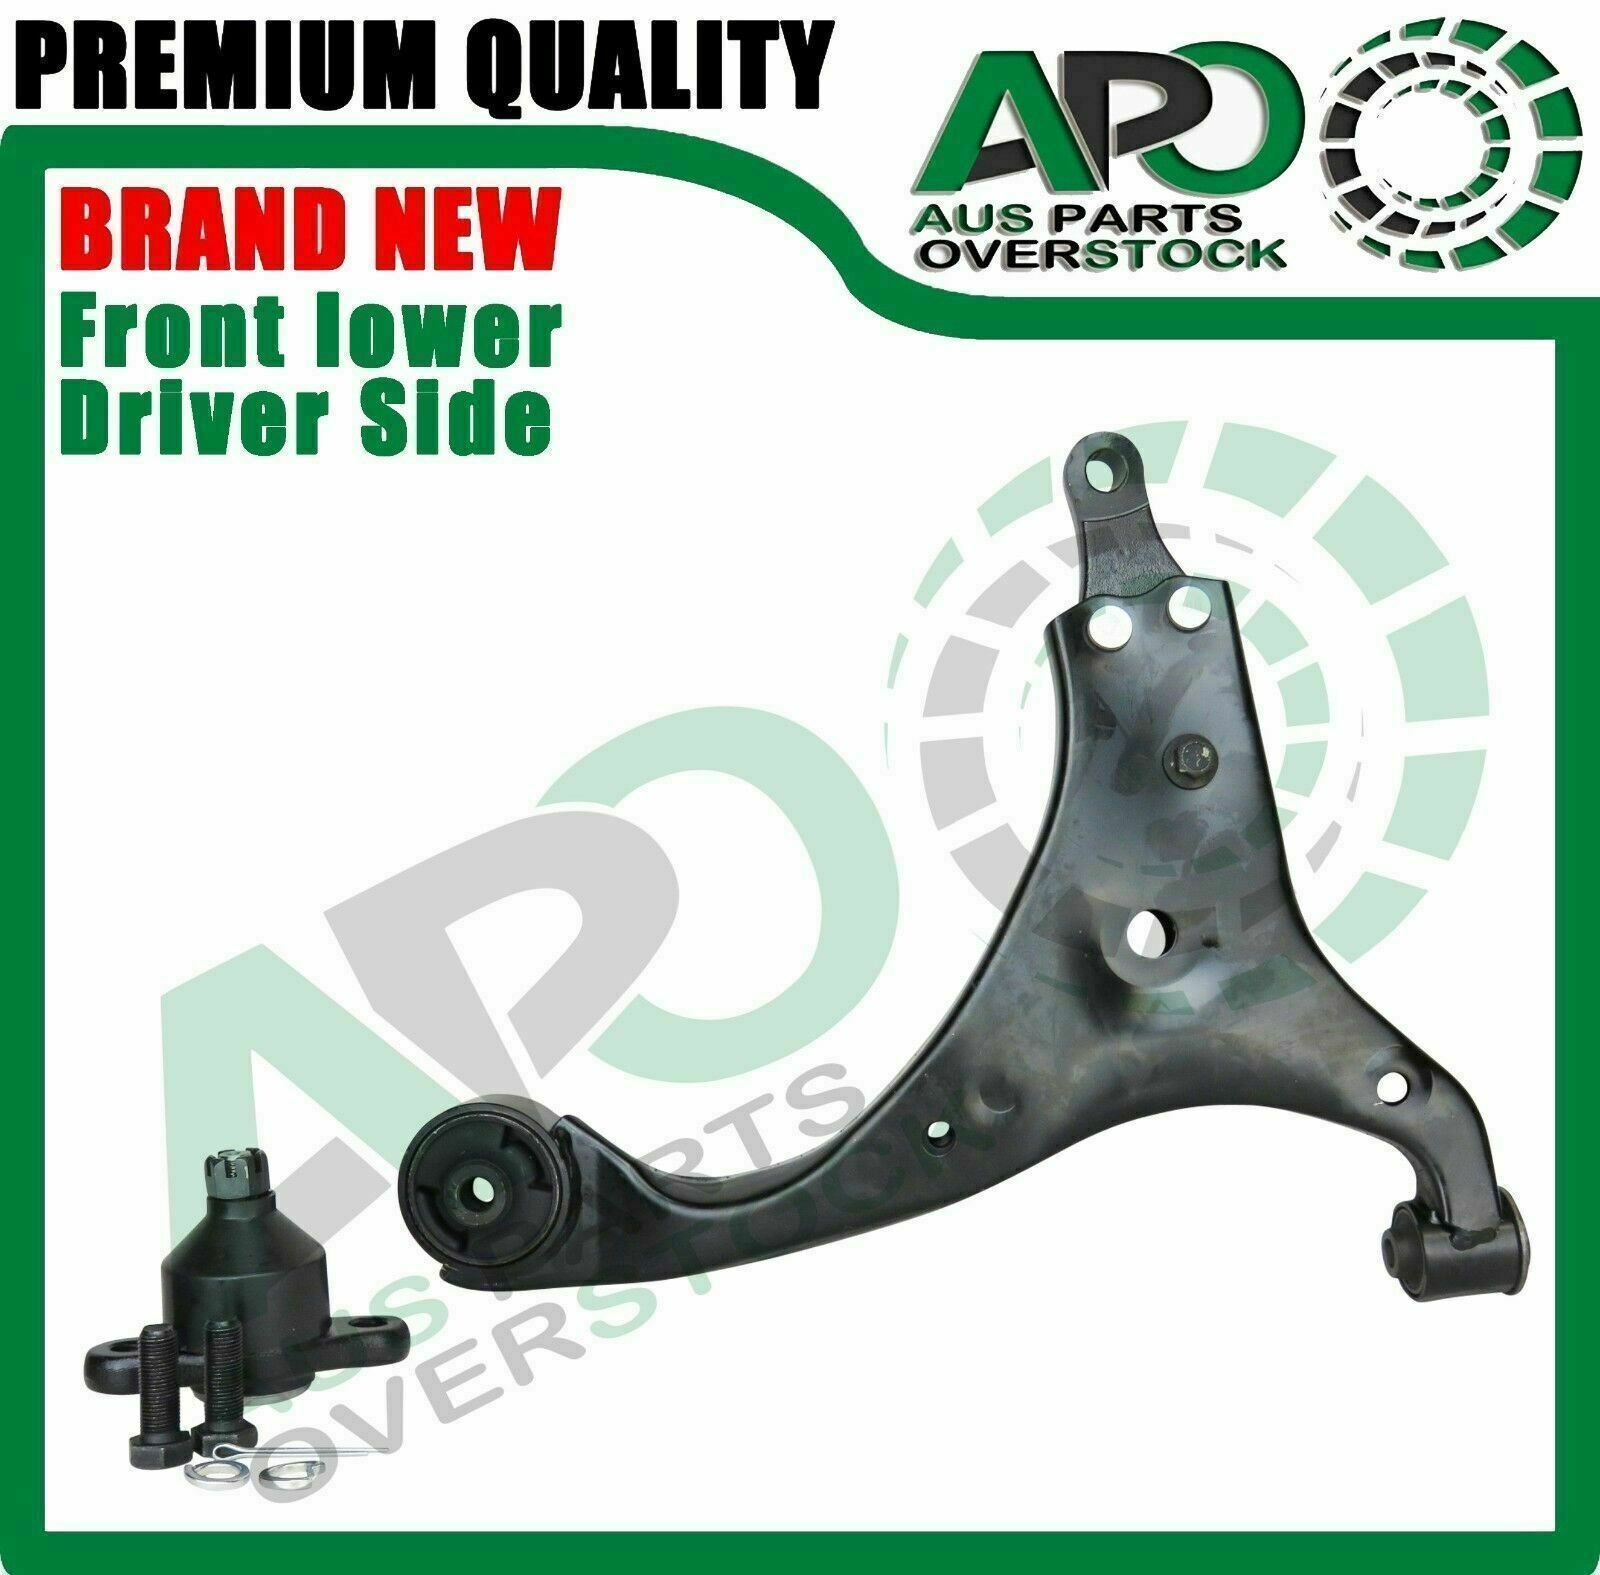 2 FRONT LOWER BALL JOINT FOR HYUNDAI I30 05-10